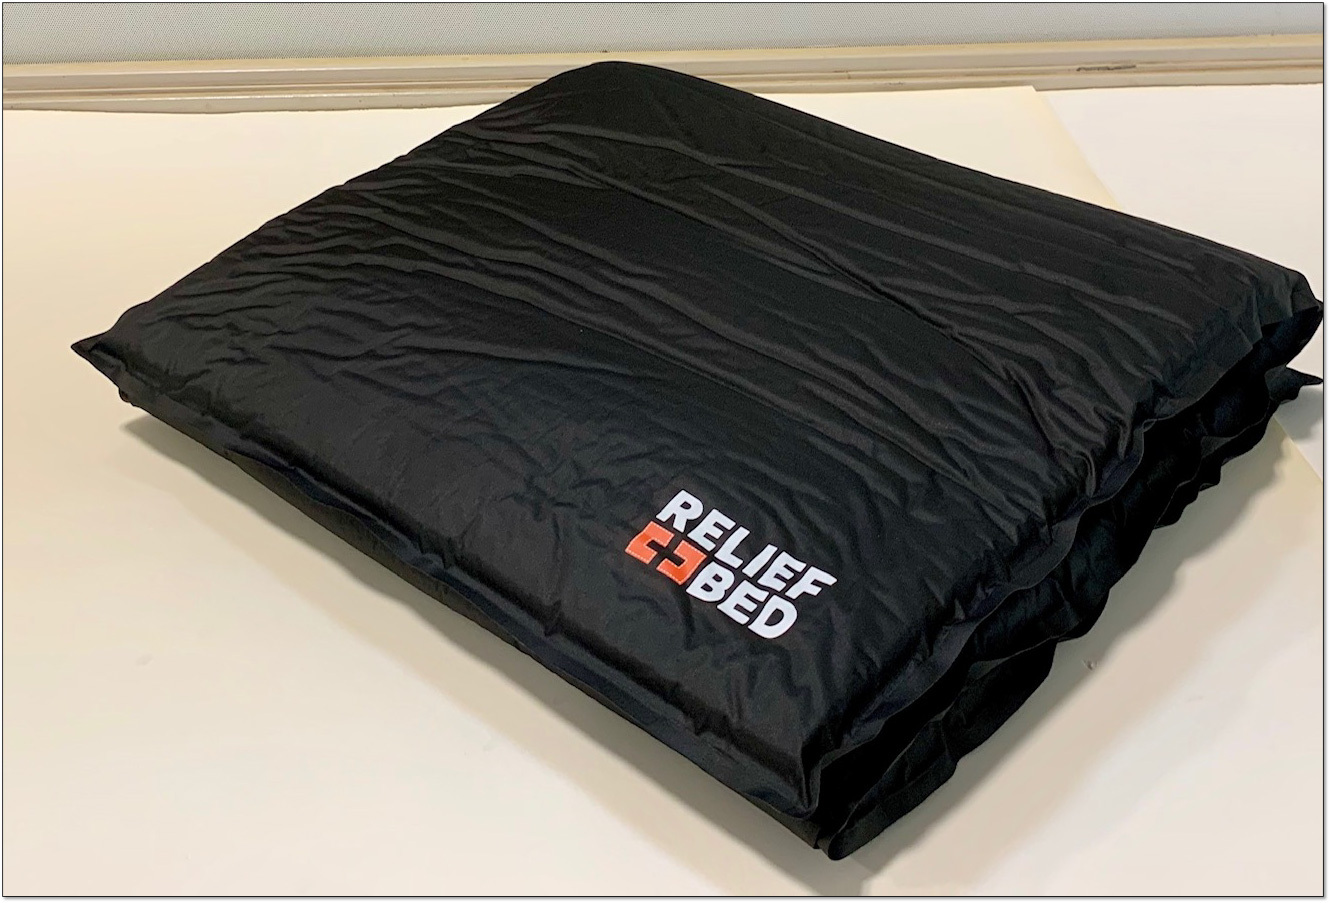 Relief Bed-- a portable, durable solution for those on the move or lacking a place to sleep.